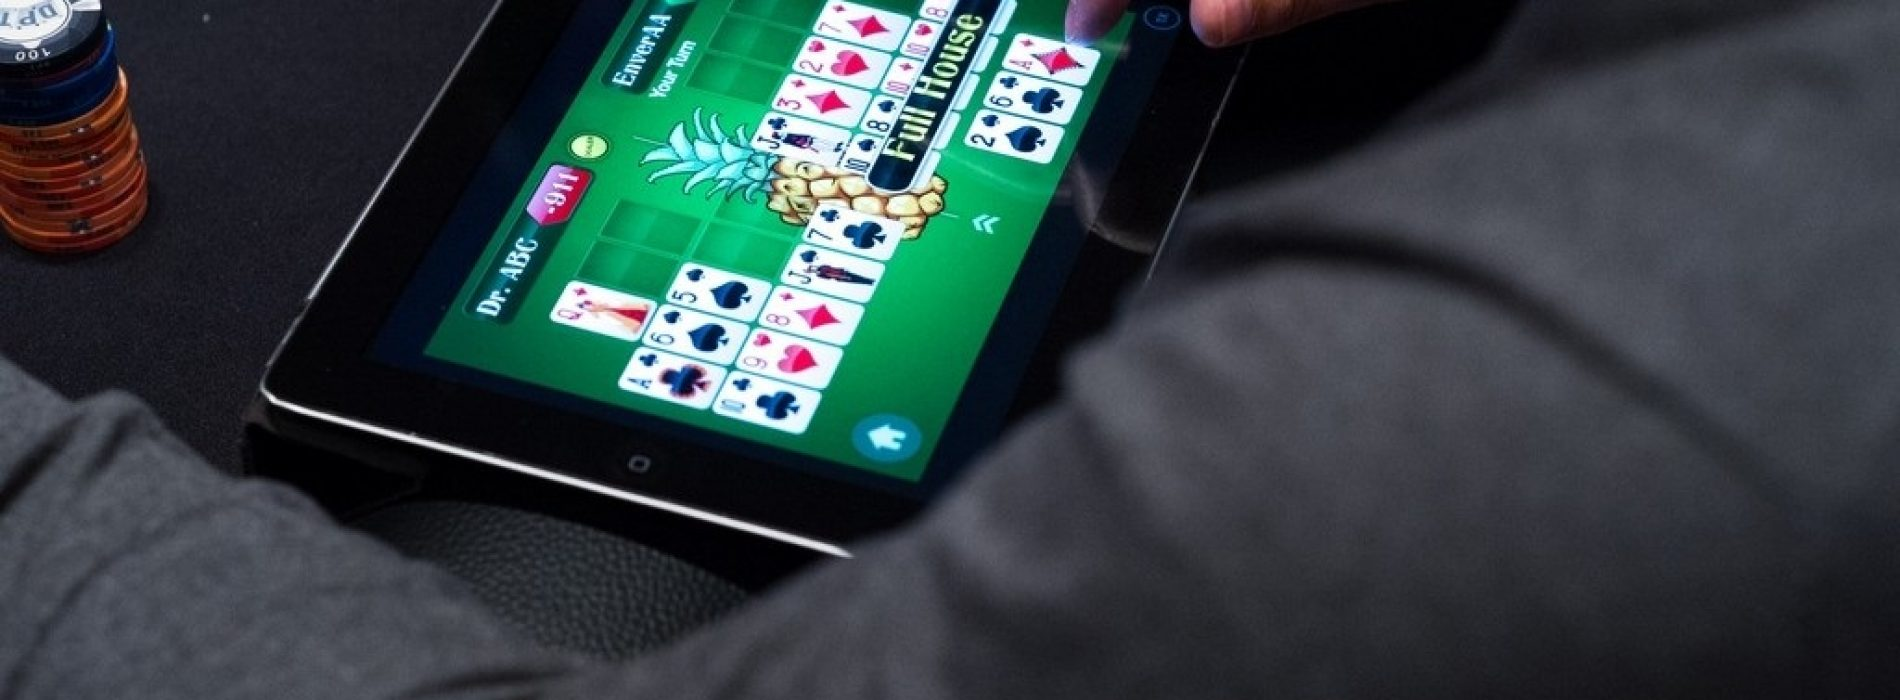 Few tips to find the best online poker game experience